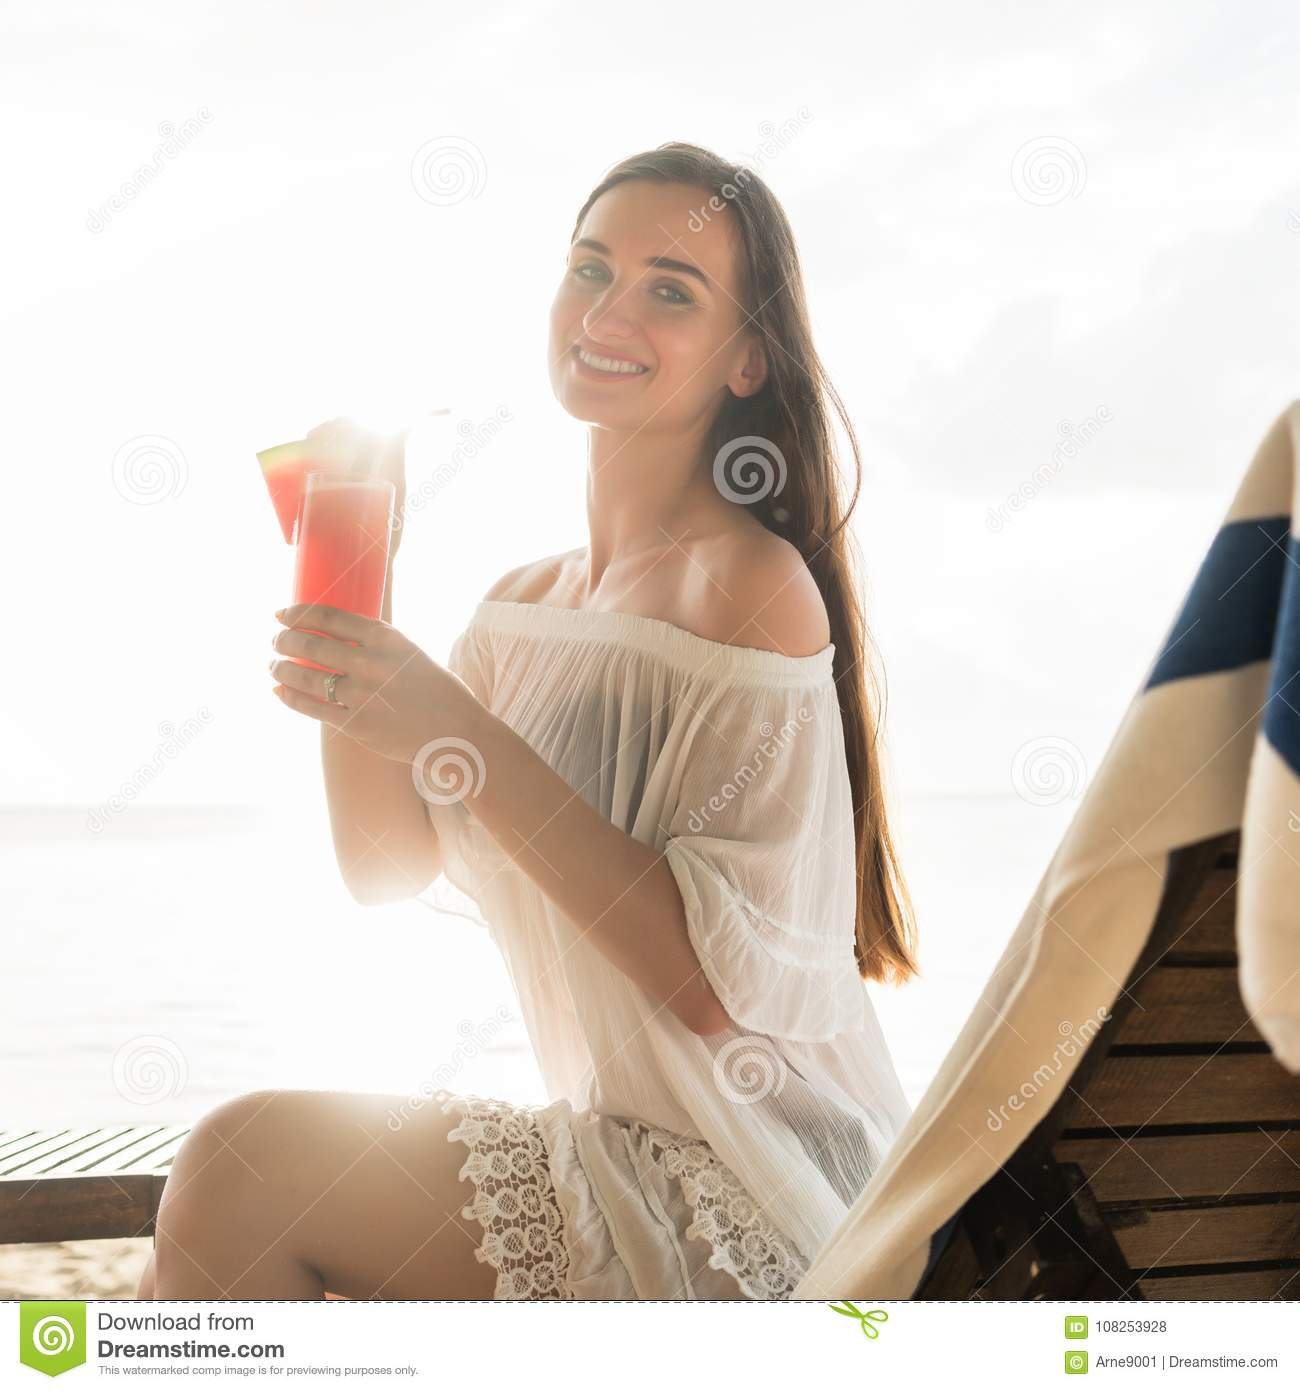 Woman Enjoying At Beach Stock Image Image Of Pleasure: Portrait Of A Beautiful Young Woman Smiling While Enjoying